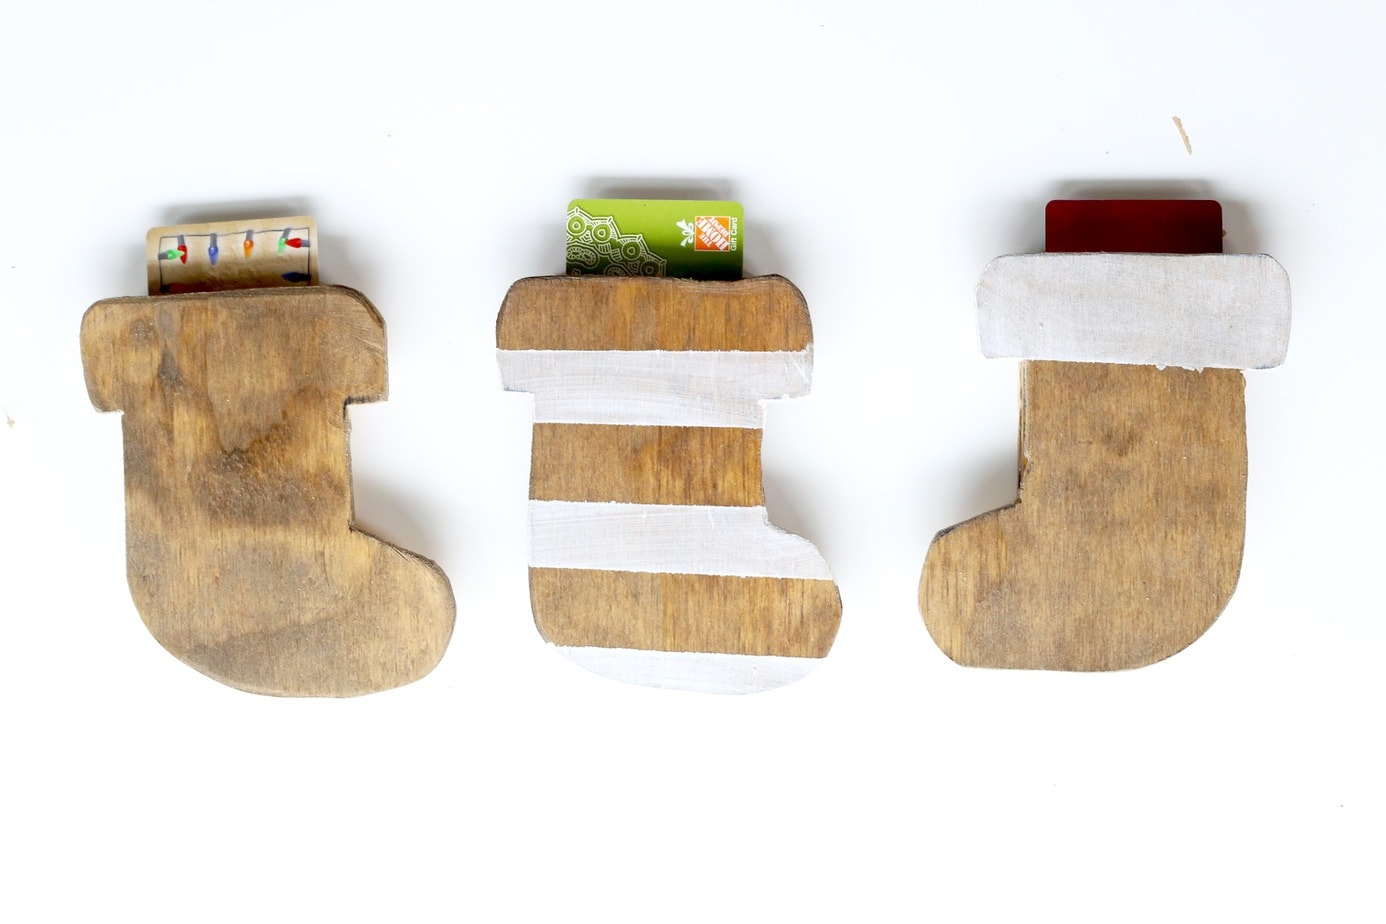 Need a unique and creative way to give a gift card? These wooden stocking gift card holders are so cute and so simple to make! This is the perfect gift idea for anyone on your list.